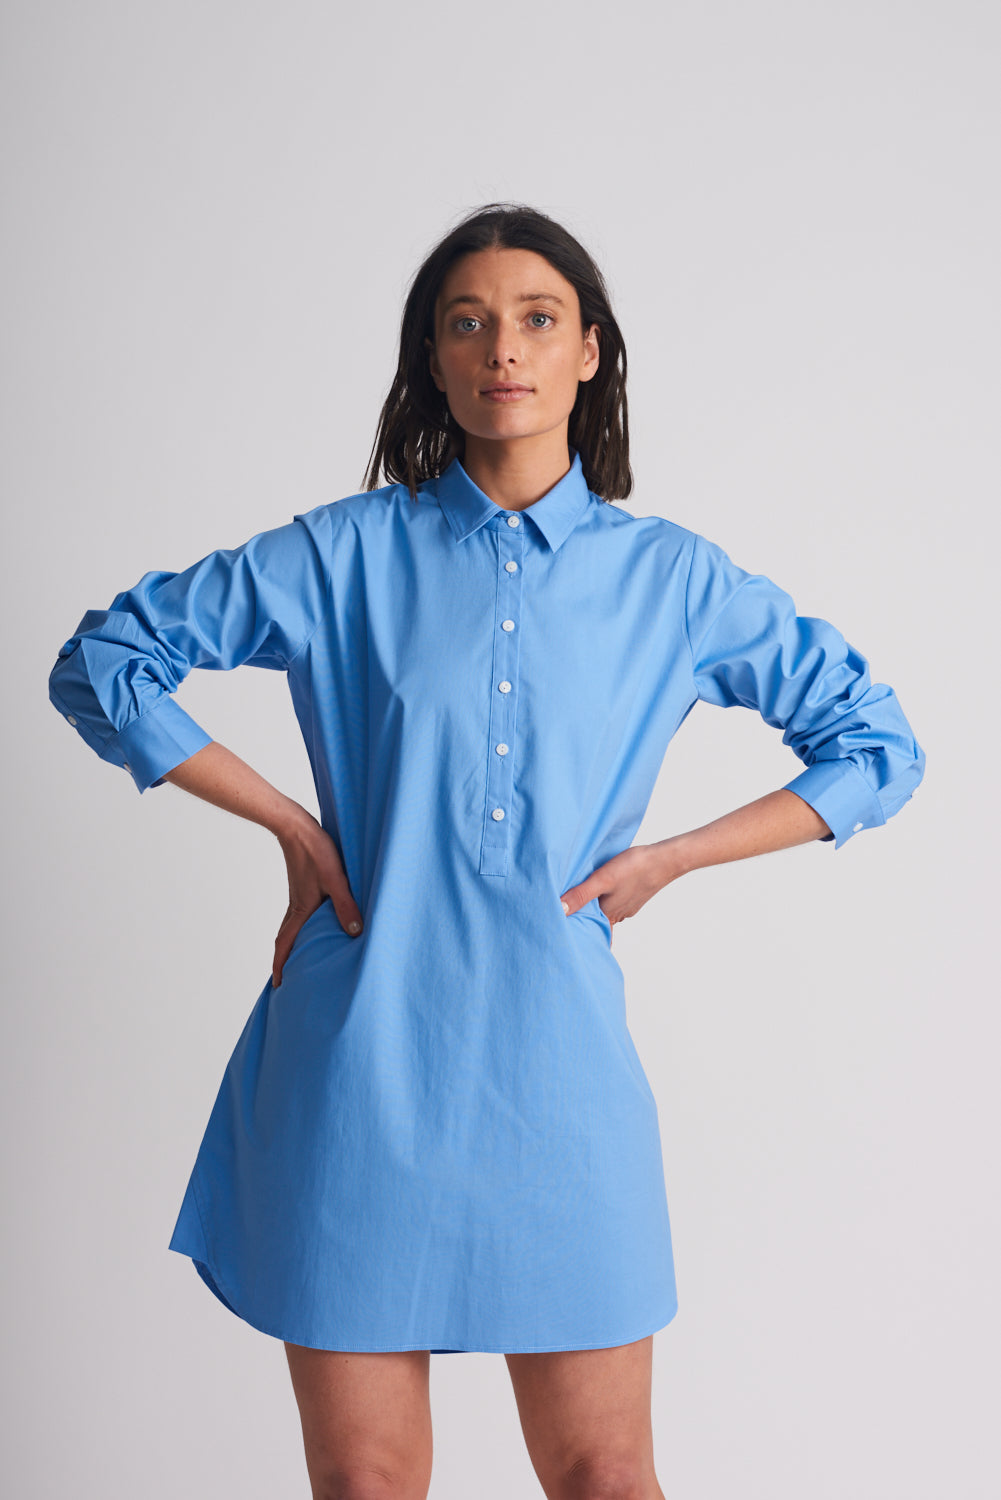 Shirty Shirt Dress Blue